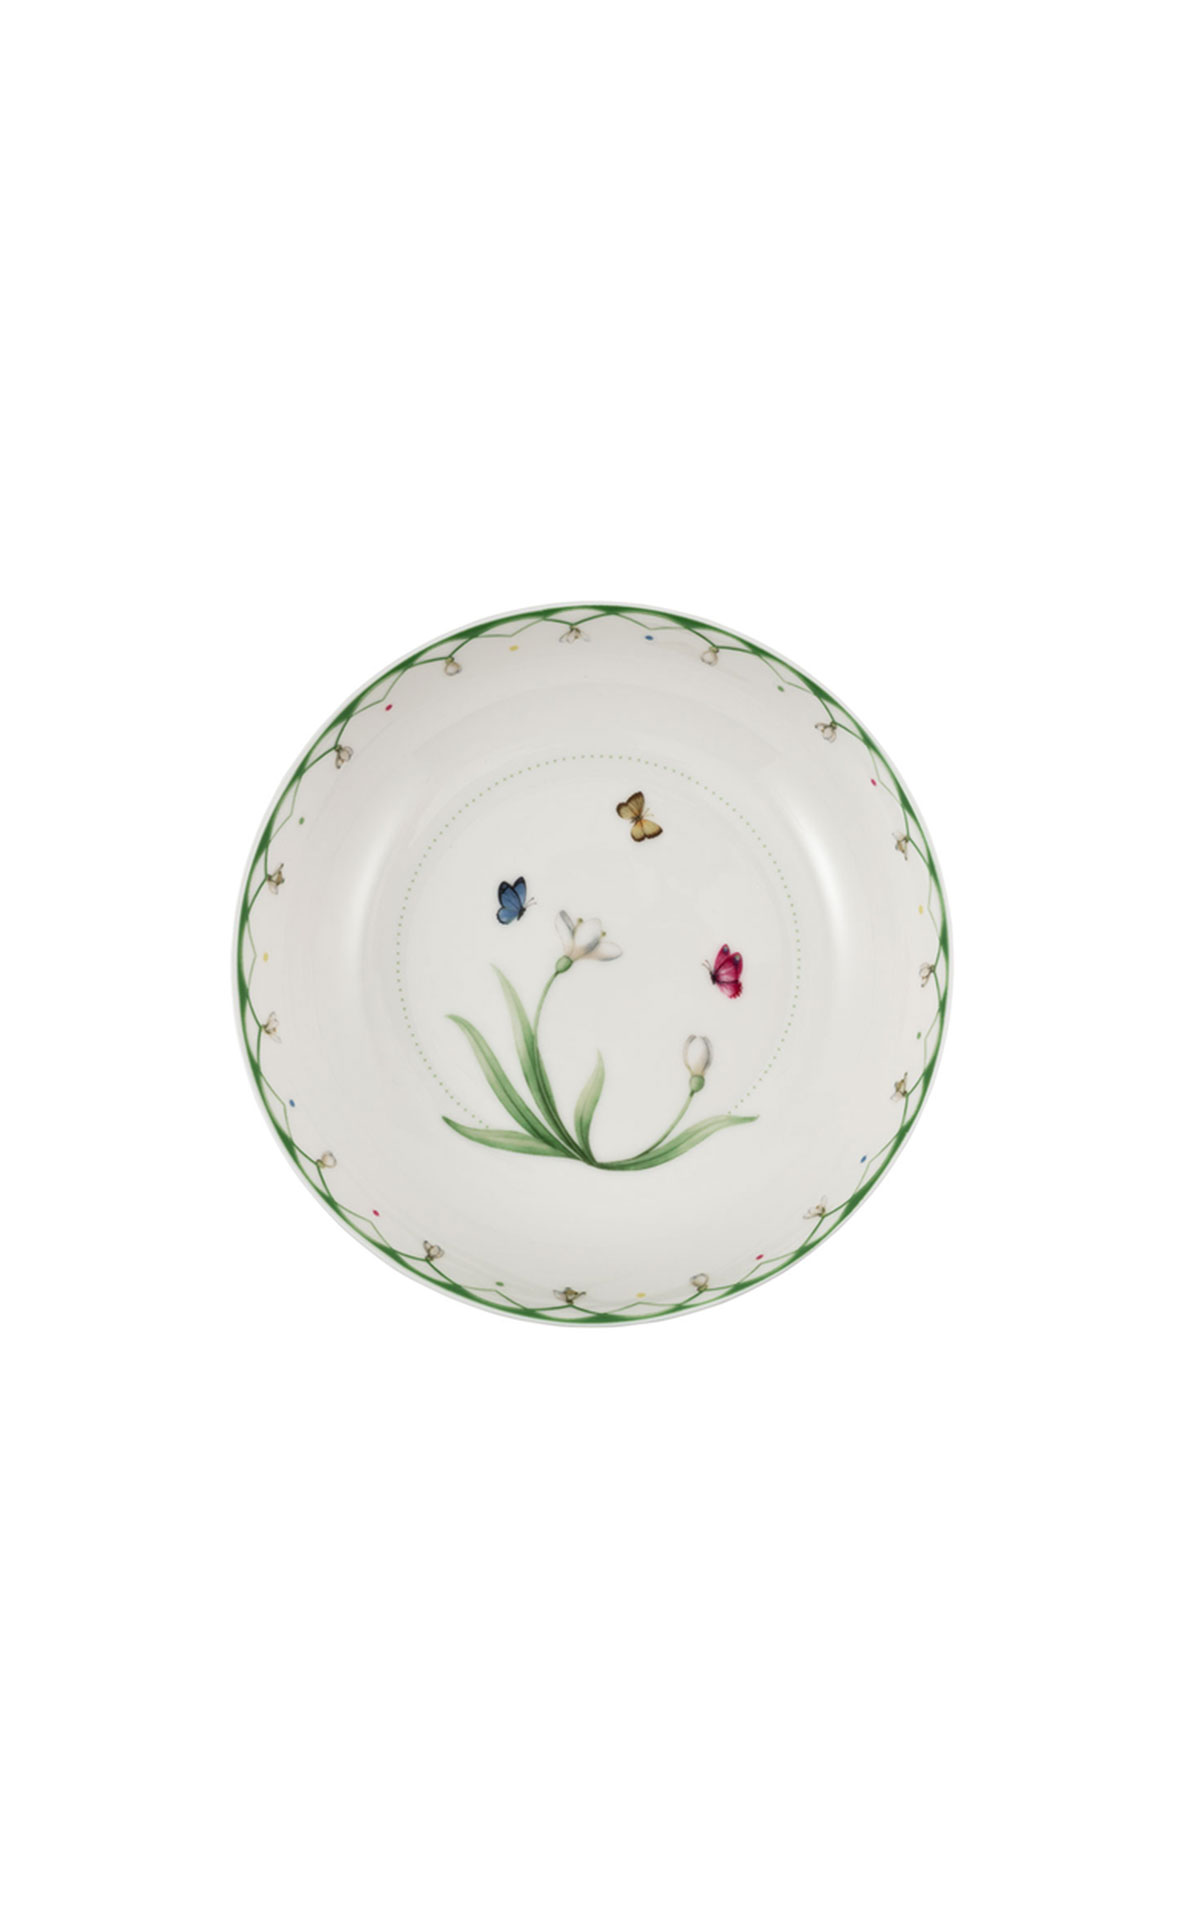 Villeroy and Boch Colourful spring salad plate from Bicester Village